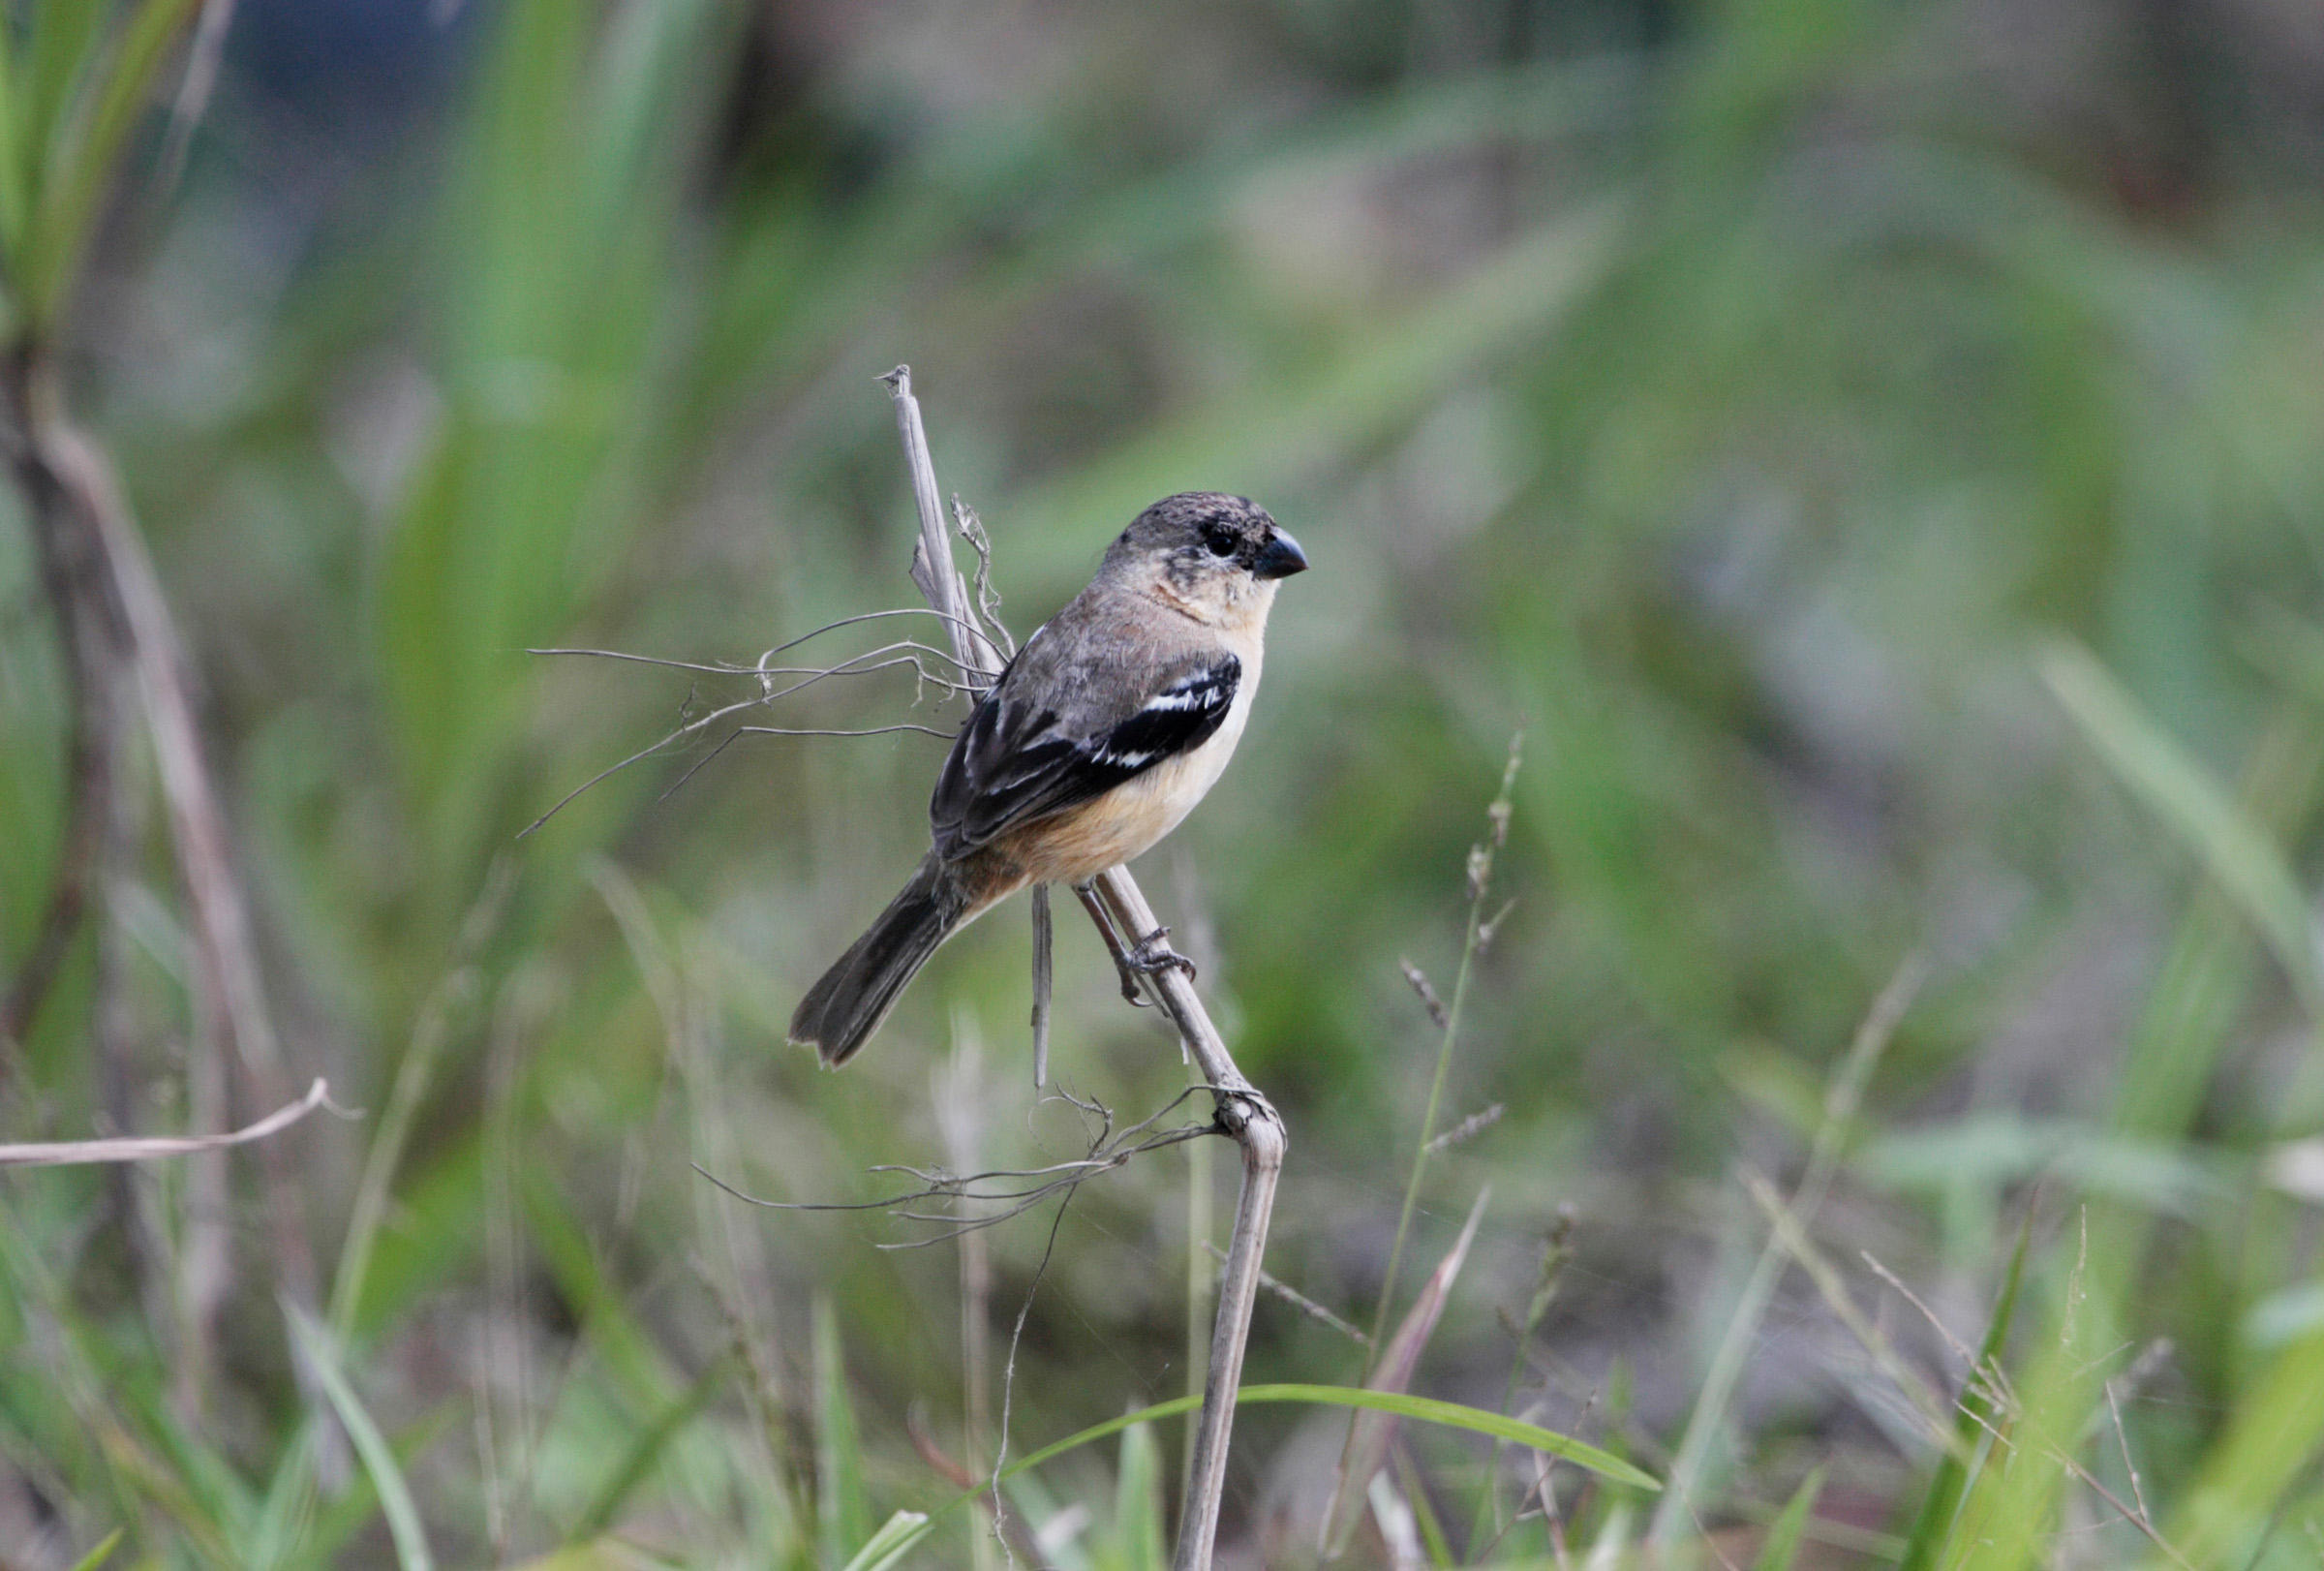 White-collared Seedeater | Audubon Field Guide